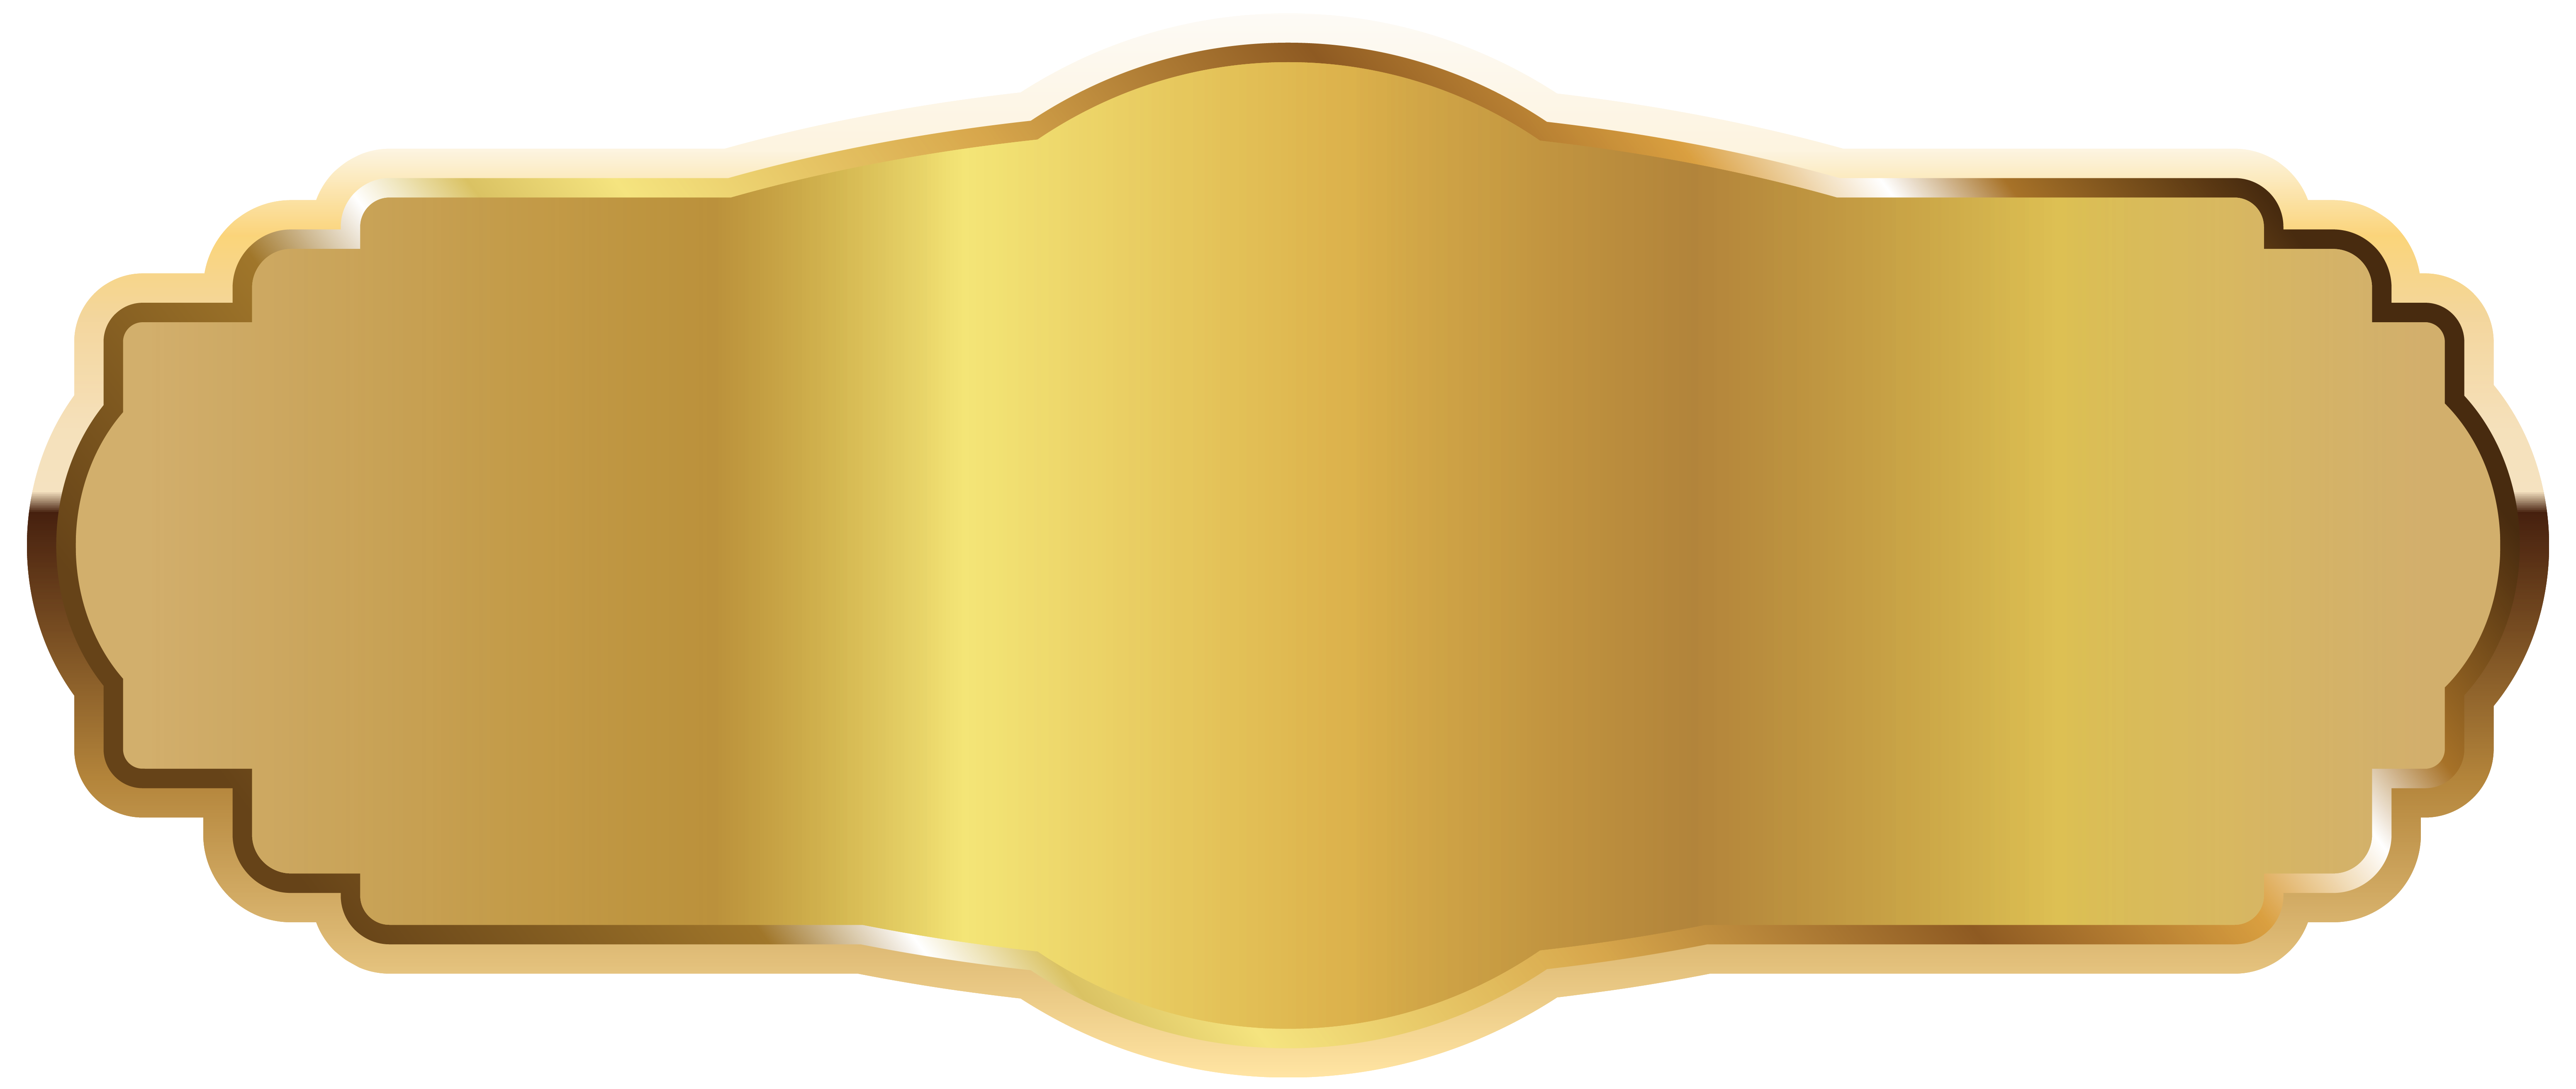 Gold label png. Clipart image gallery yopriceville